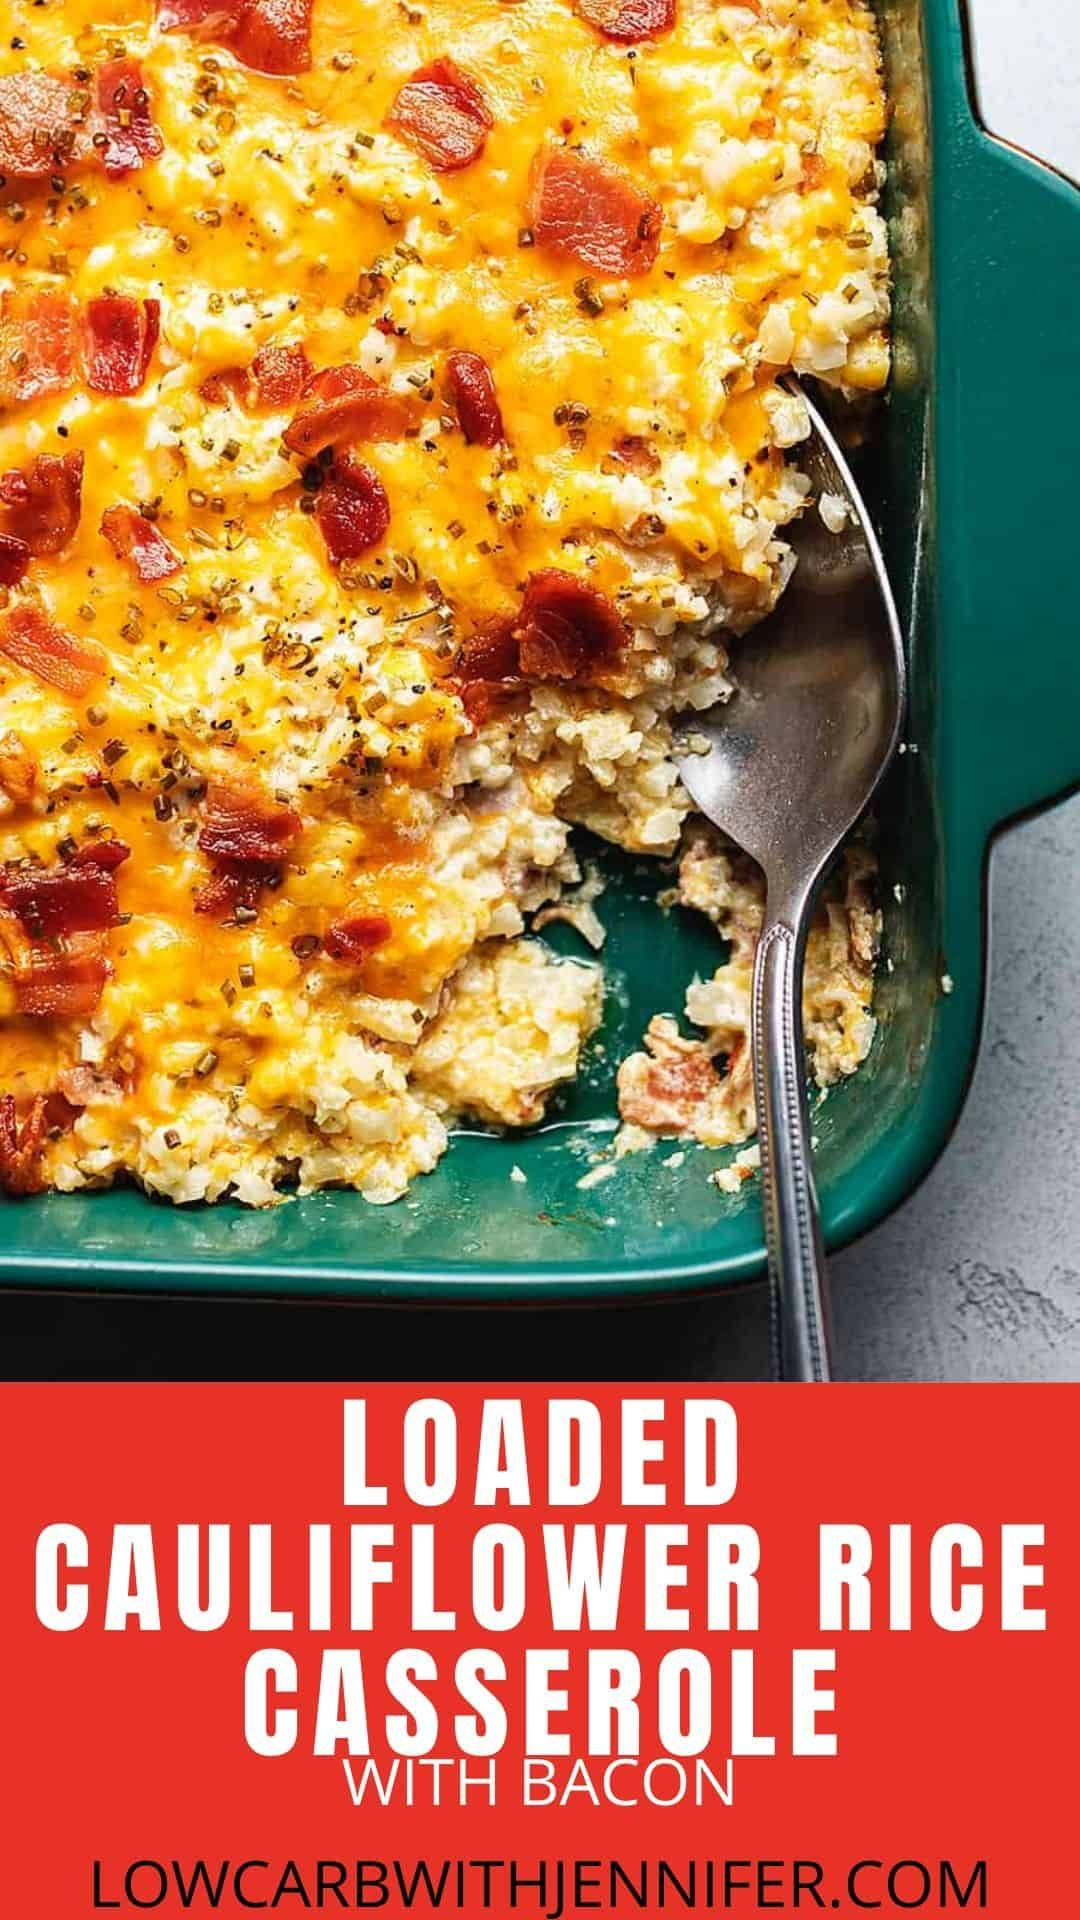 Loaded Cauliflower Rice Casserole • Low Carb with Jennifer